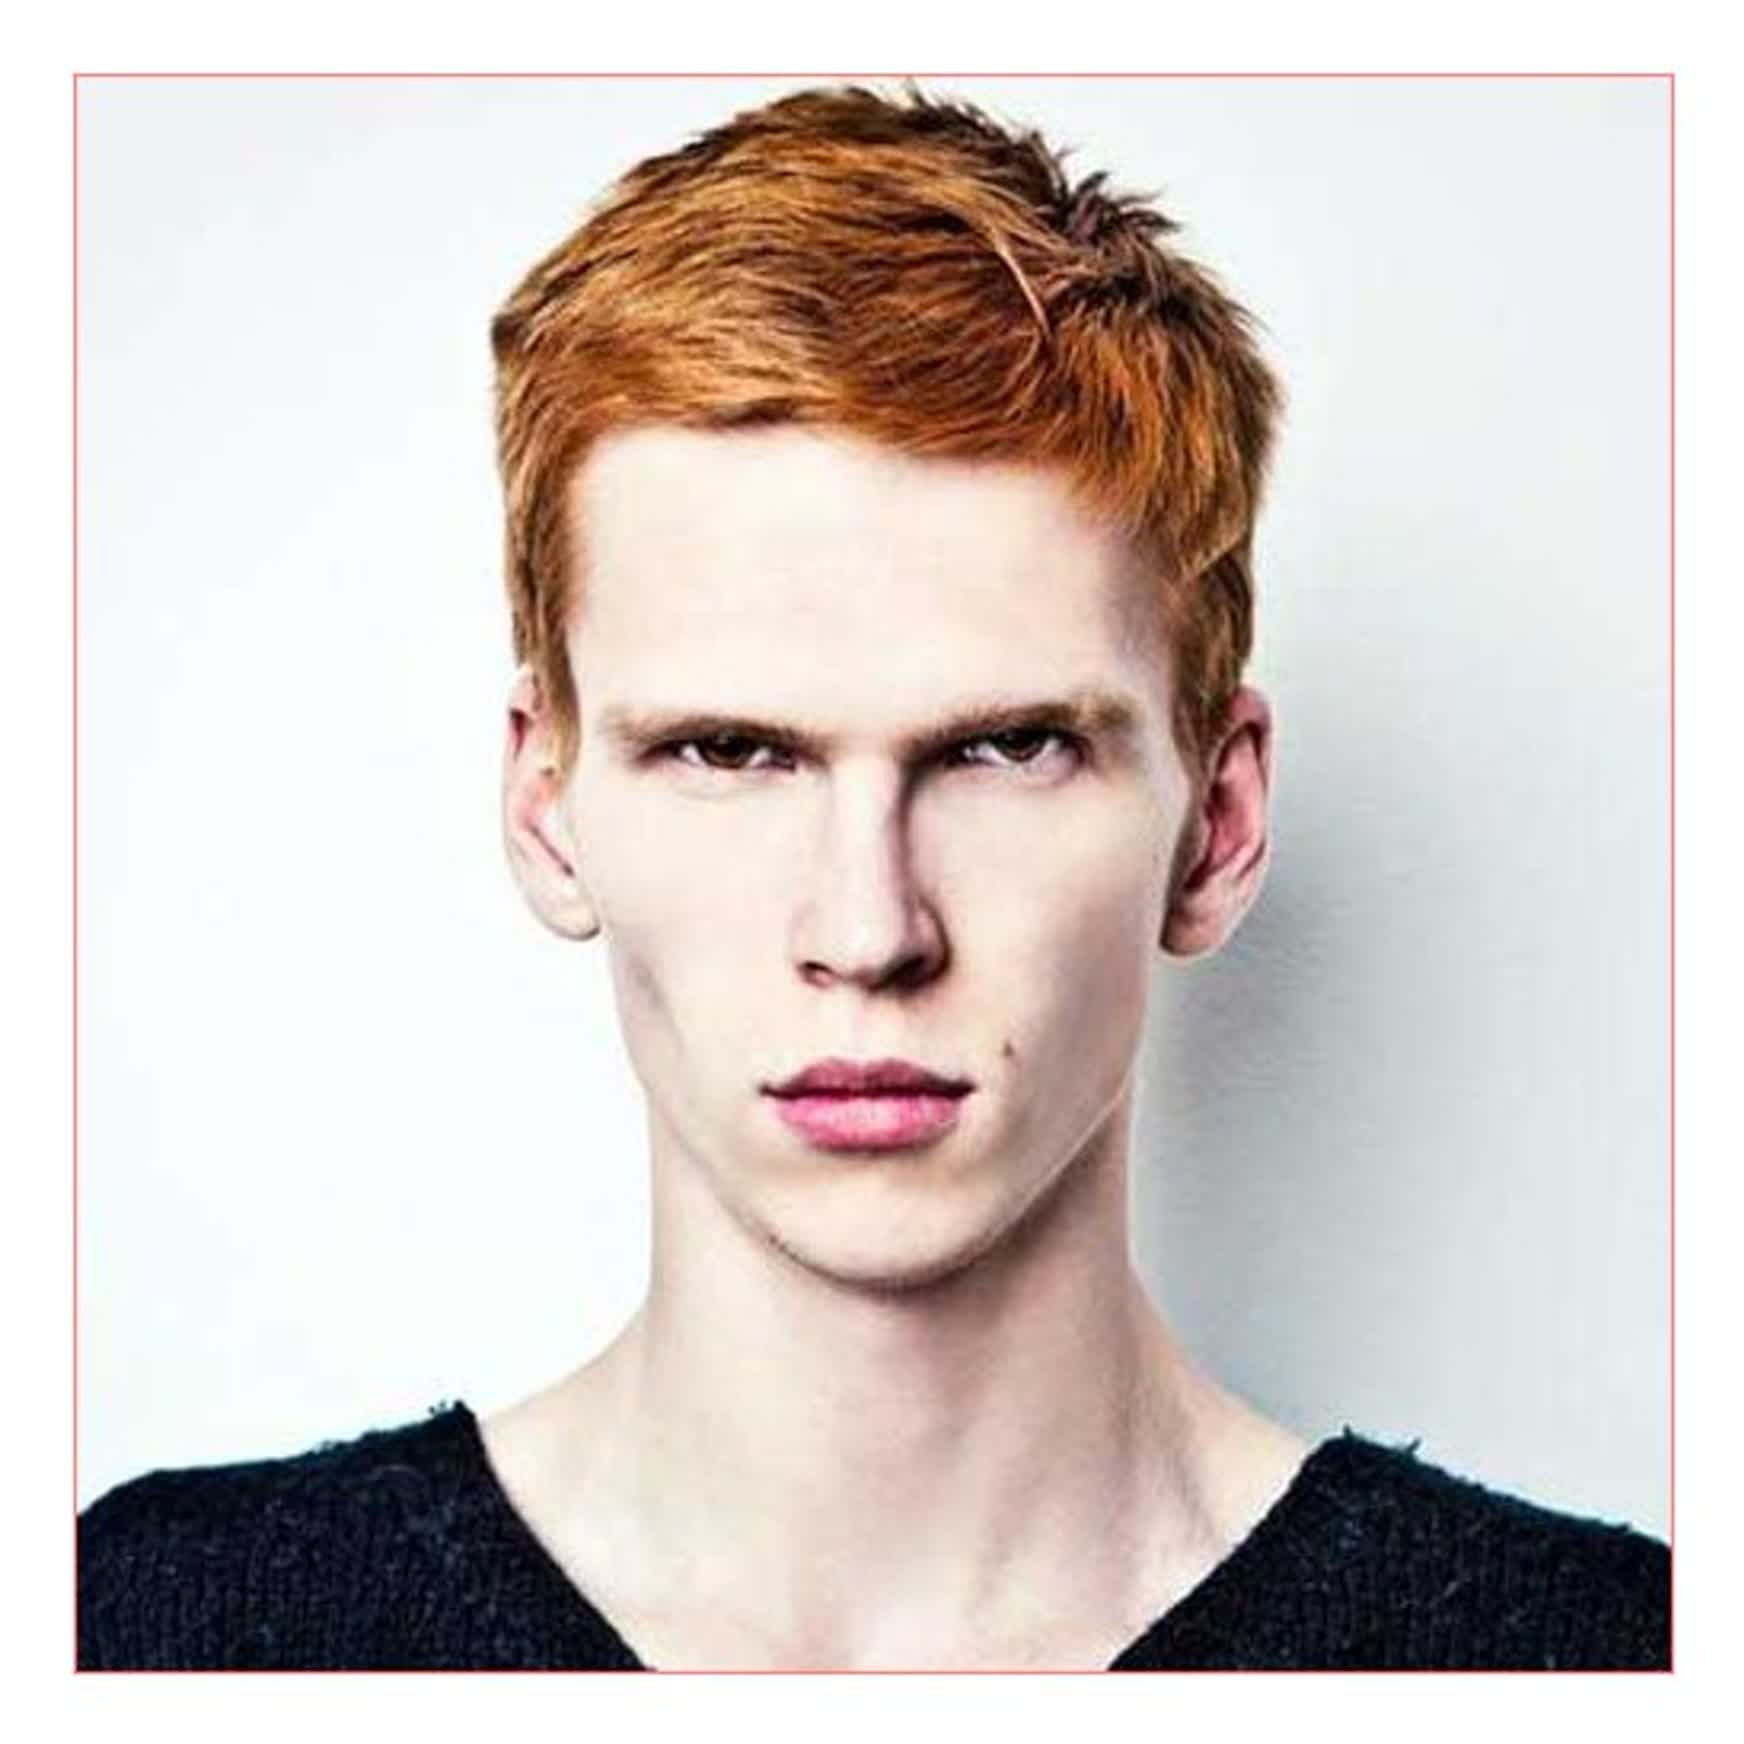 Haircuts Types Lovely Mens Types Of Haircuts as Well as Ginger Mens Thick Hair Ideas | Mens ...